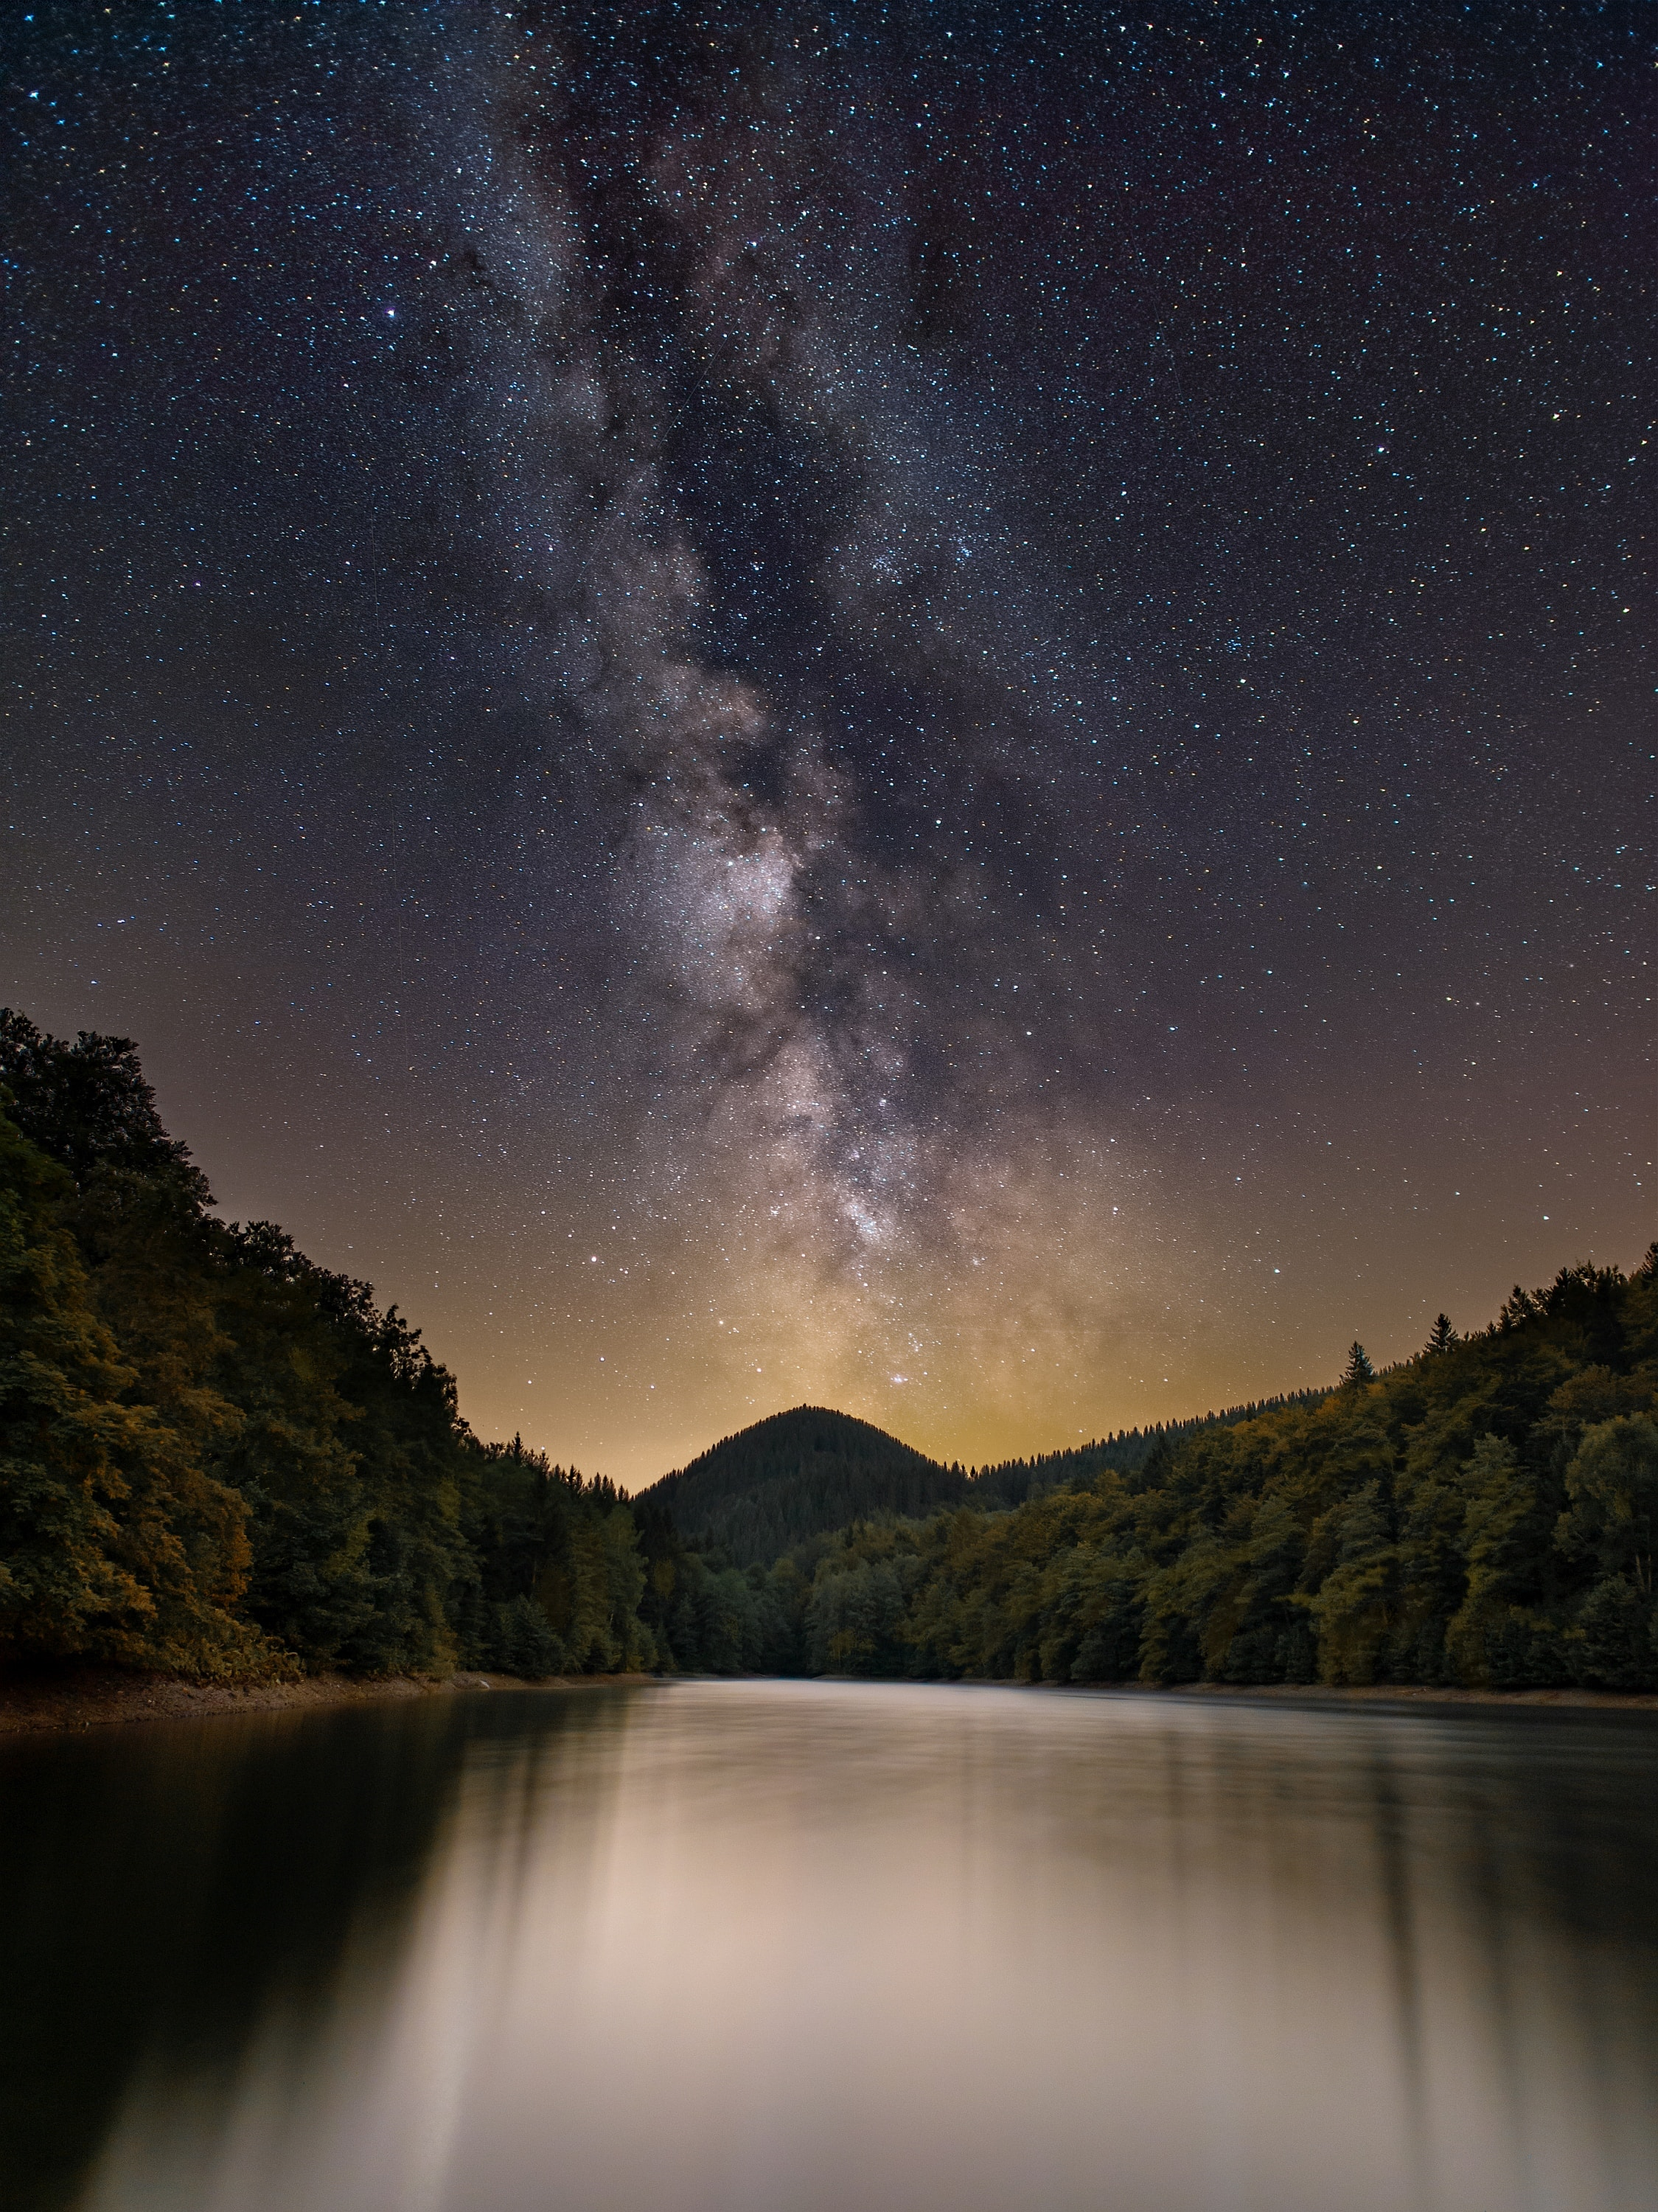 89680 download wallpaper Lake, Nature, Trees, Mountain, Starry Sky, Milky Way screensavers and pictures for free